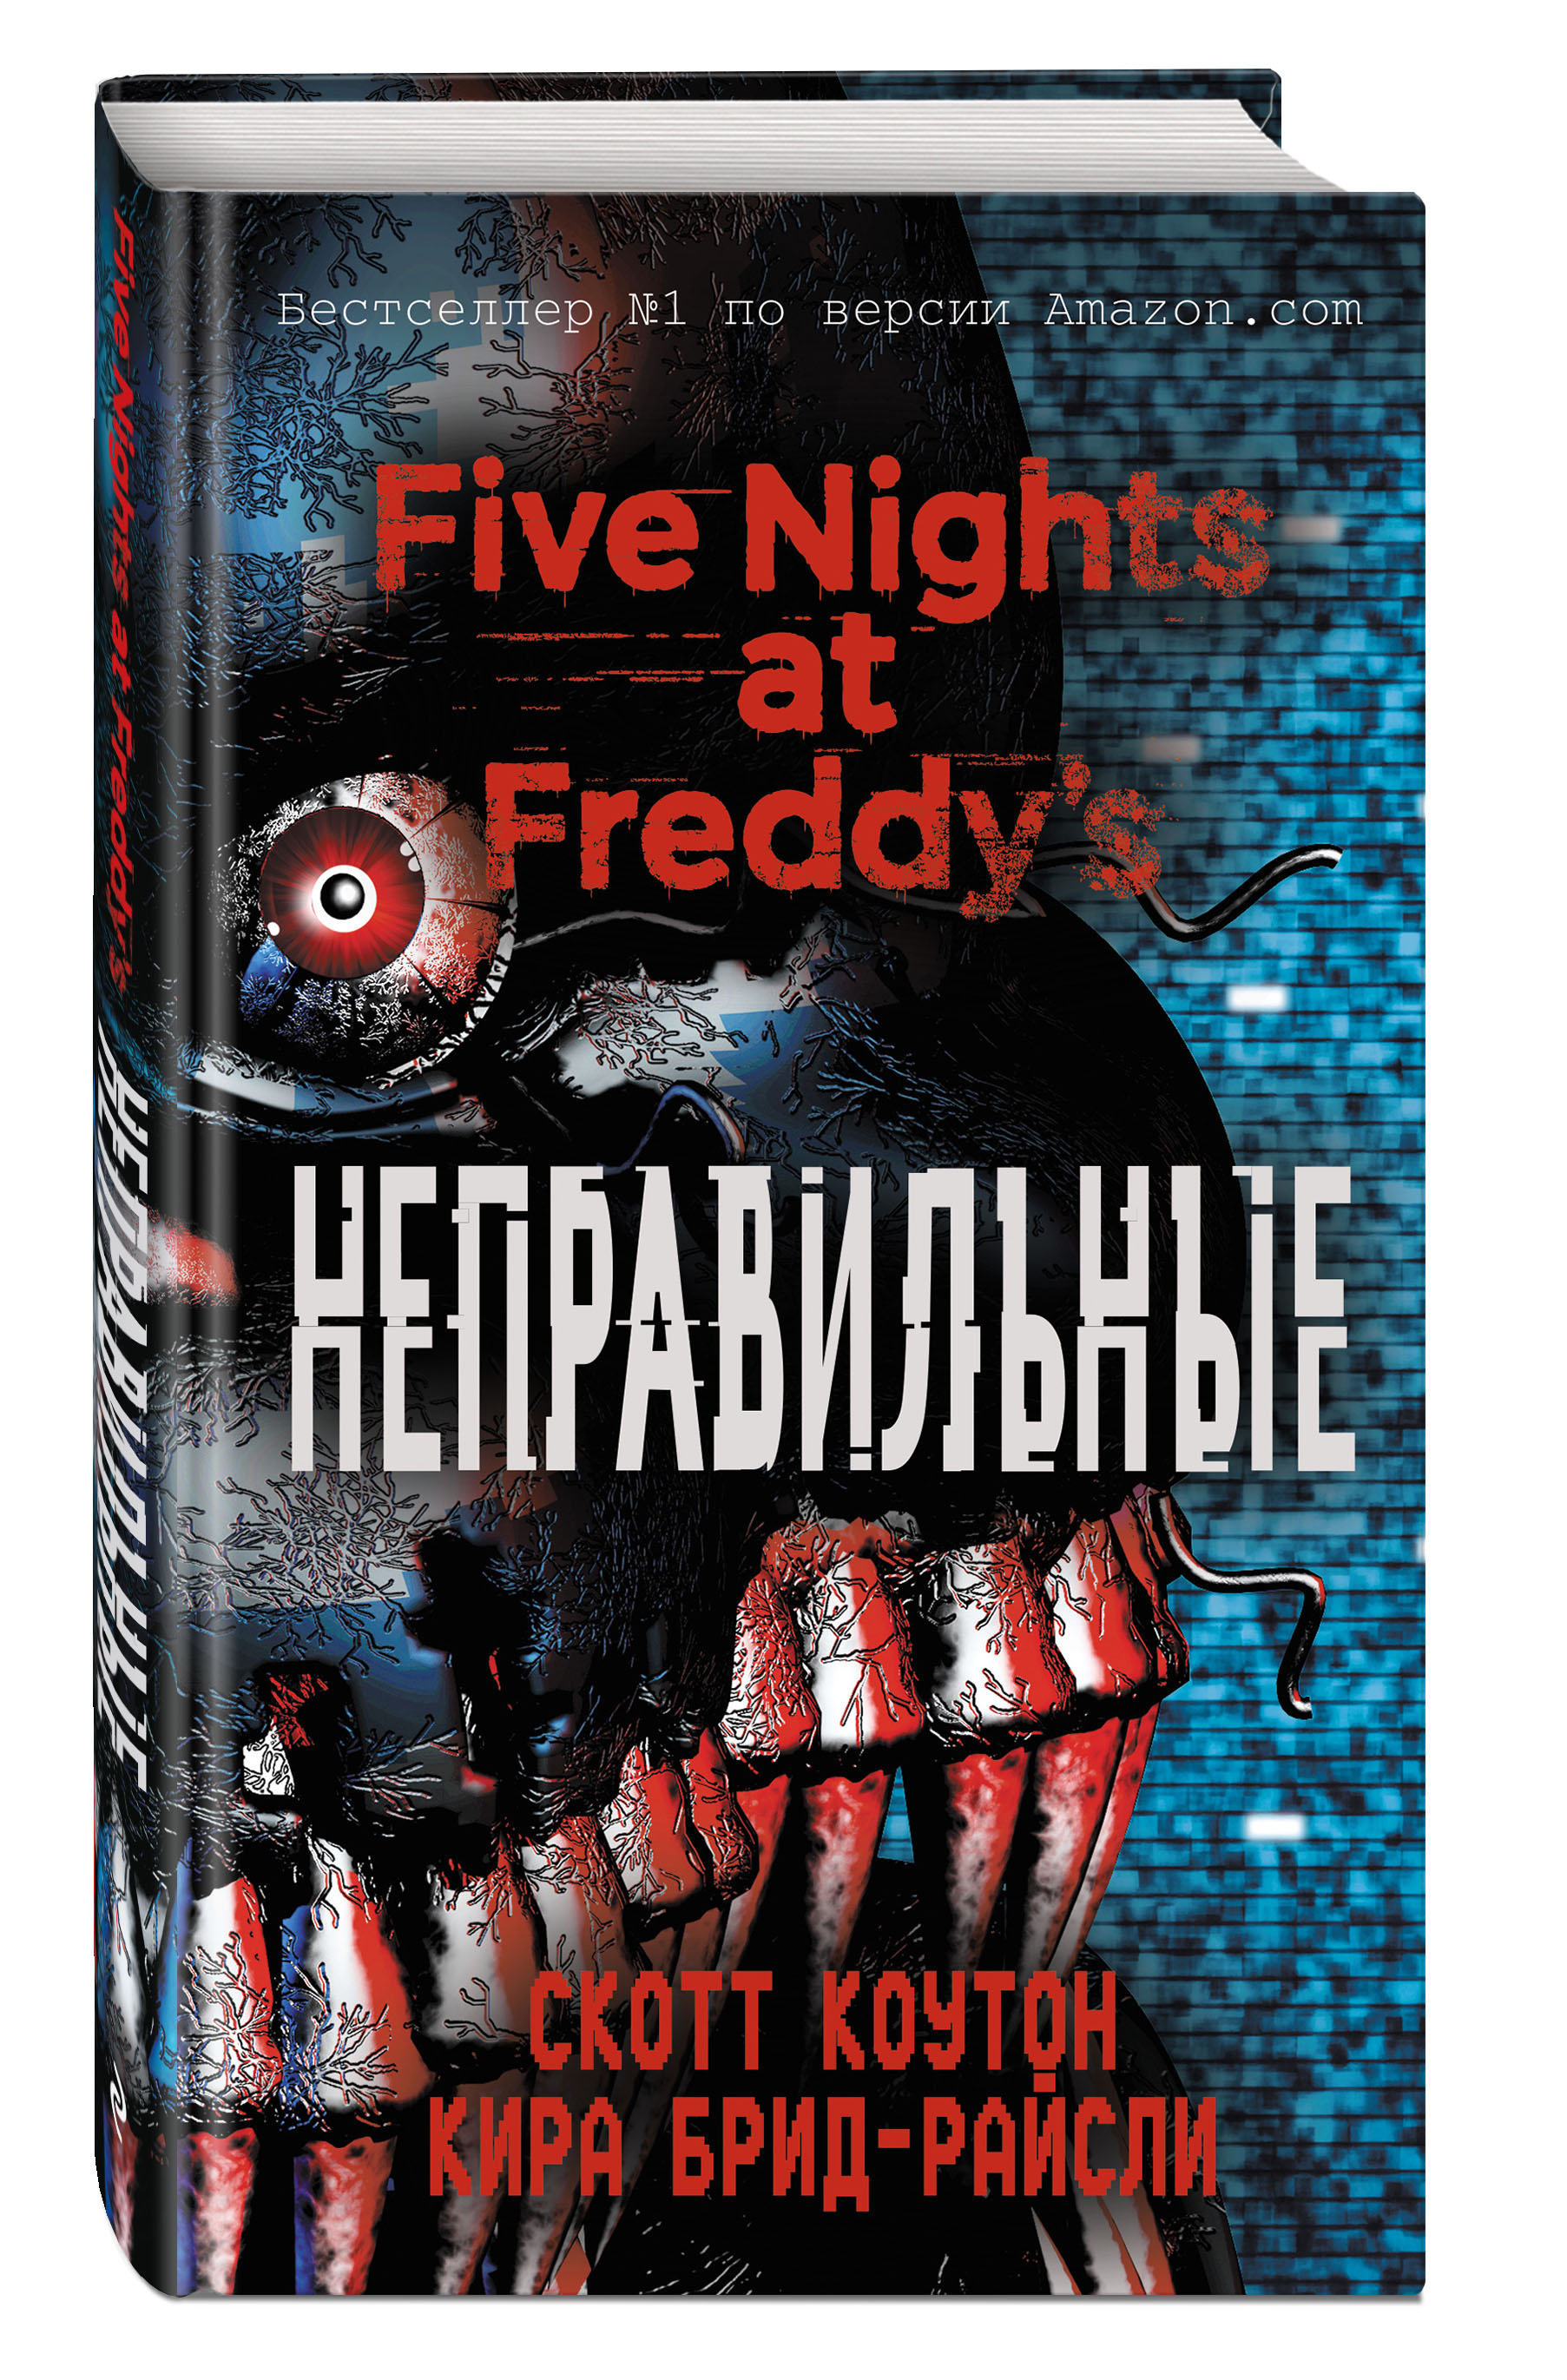 Скотт Коутон, Кира Брид-Райсли Пять ночей у Фредди. Неправильные five nights at freddy s 4 fnaf bonnie foxy freddy fazbear bear plush toys doll 10 stuffed animals doll kids christmas dolls